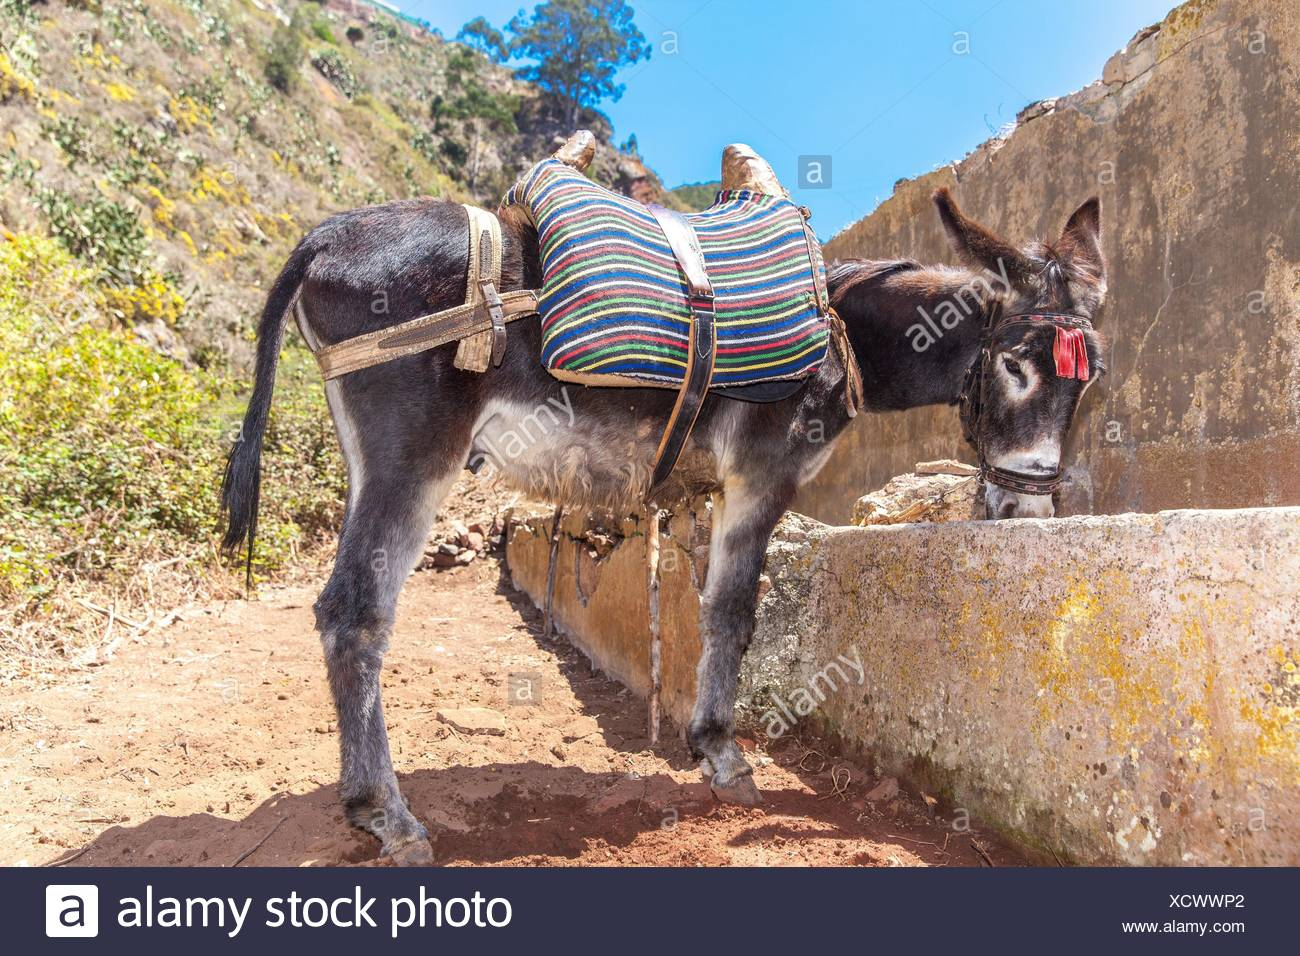 Donkey drinking water from a drinking trough in Roque Negro municipality. Santa Cruz de Tenerife - Stock Image